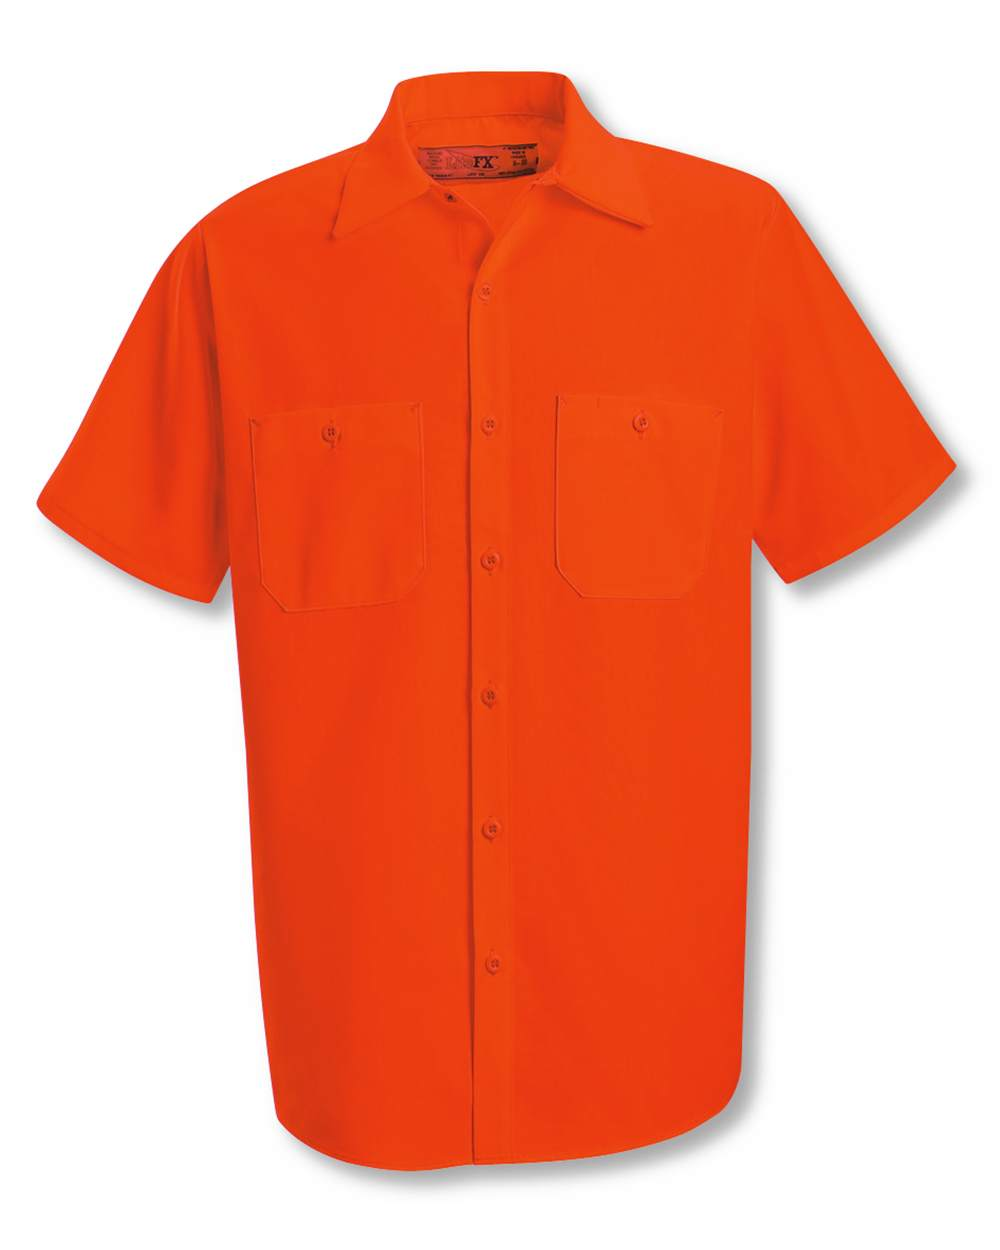 Red Kap Industrial SS24 Enhanced Visibility Short Sleeve ...